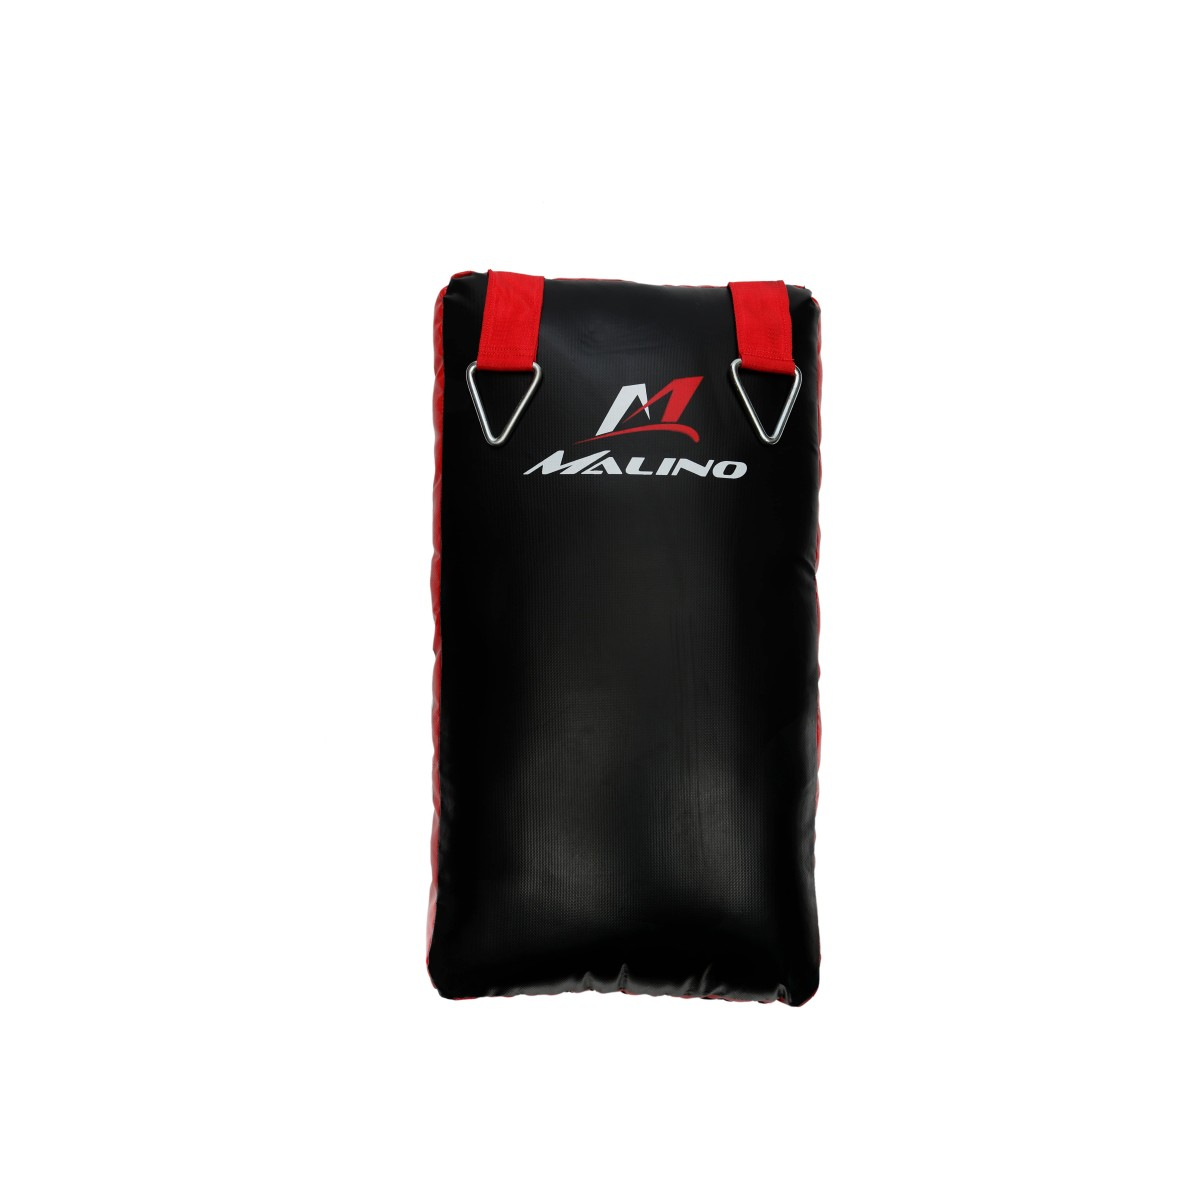 Malino Premium Wall Kick Pad Black Red